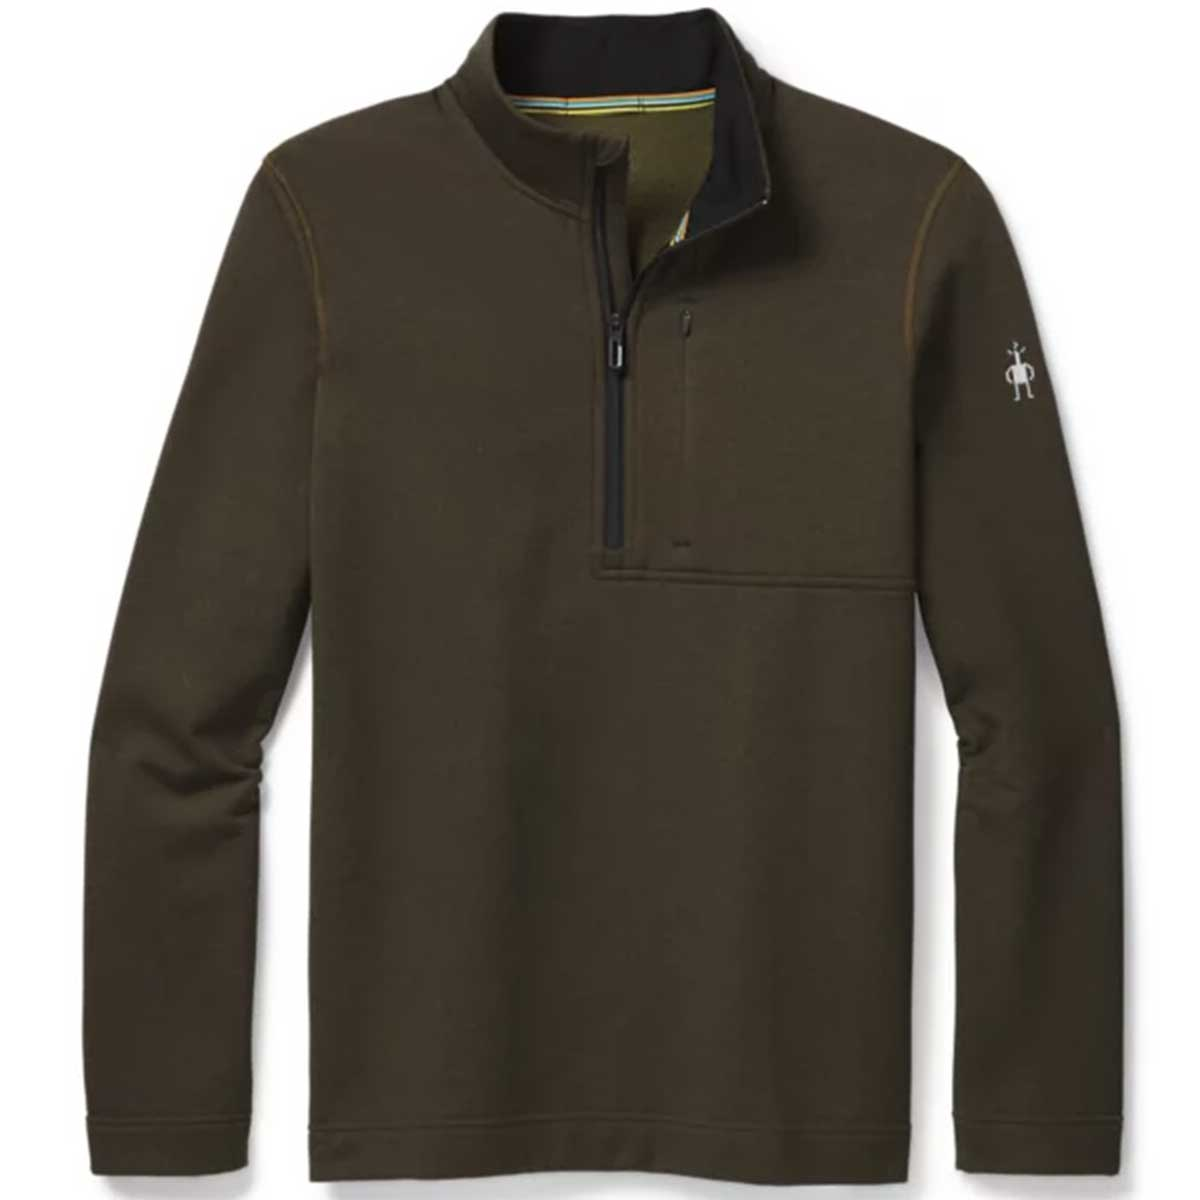 Smartwool men's Merino Sport Fleece 1/2 Zip in Military Olive Heather front view